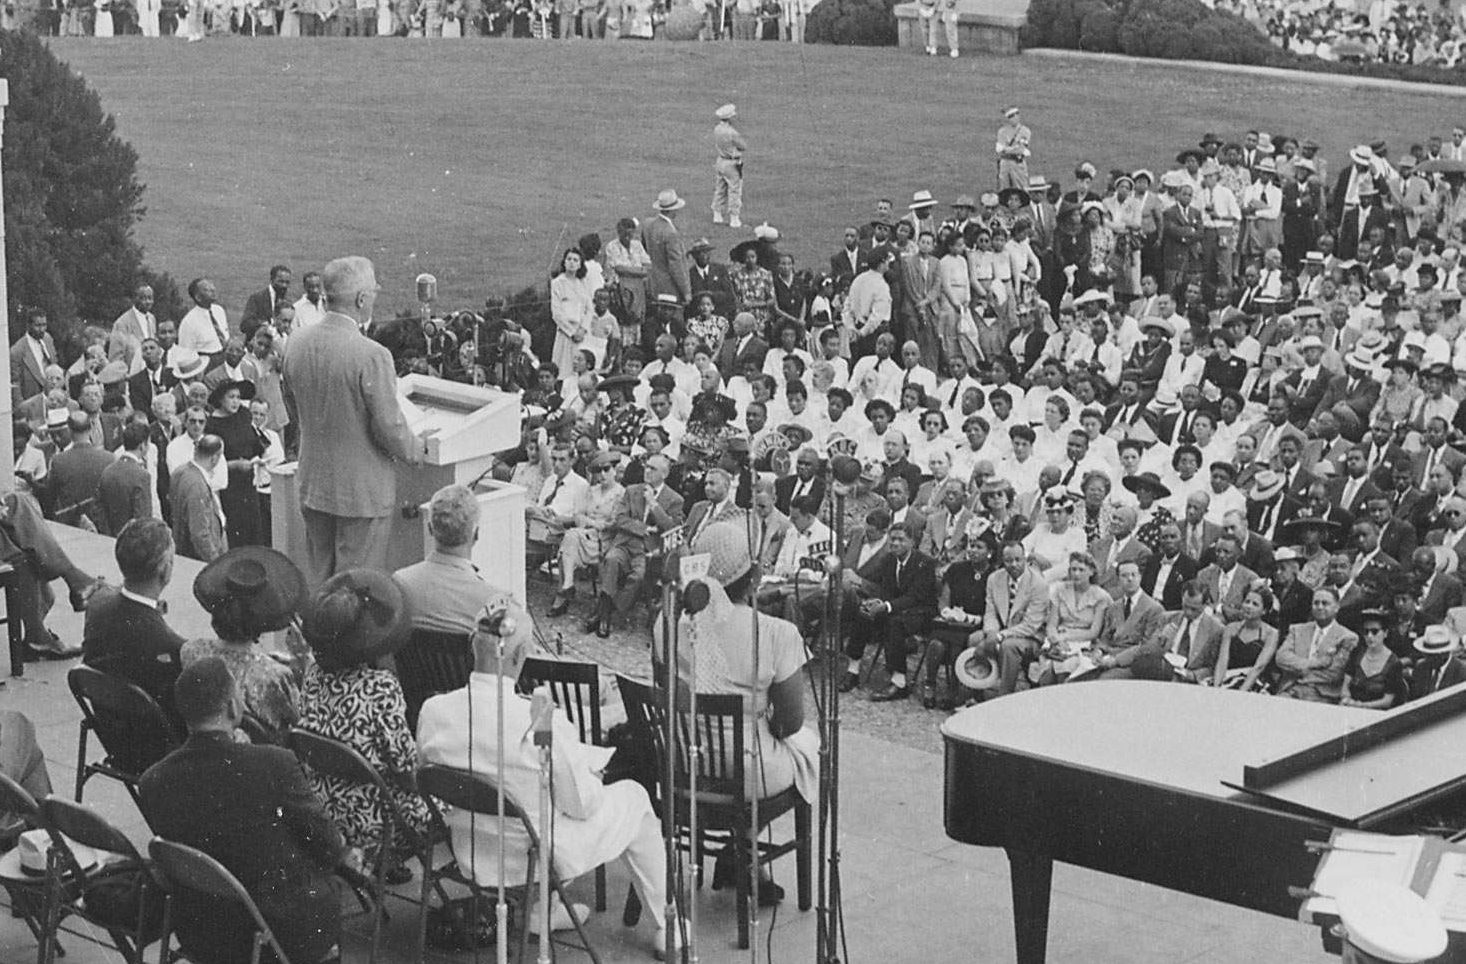 Truman Speaking at the Lincoln Memorial